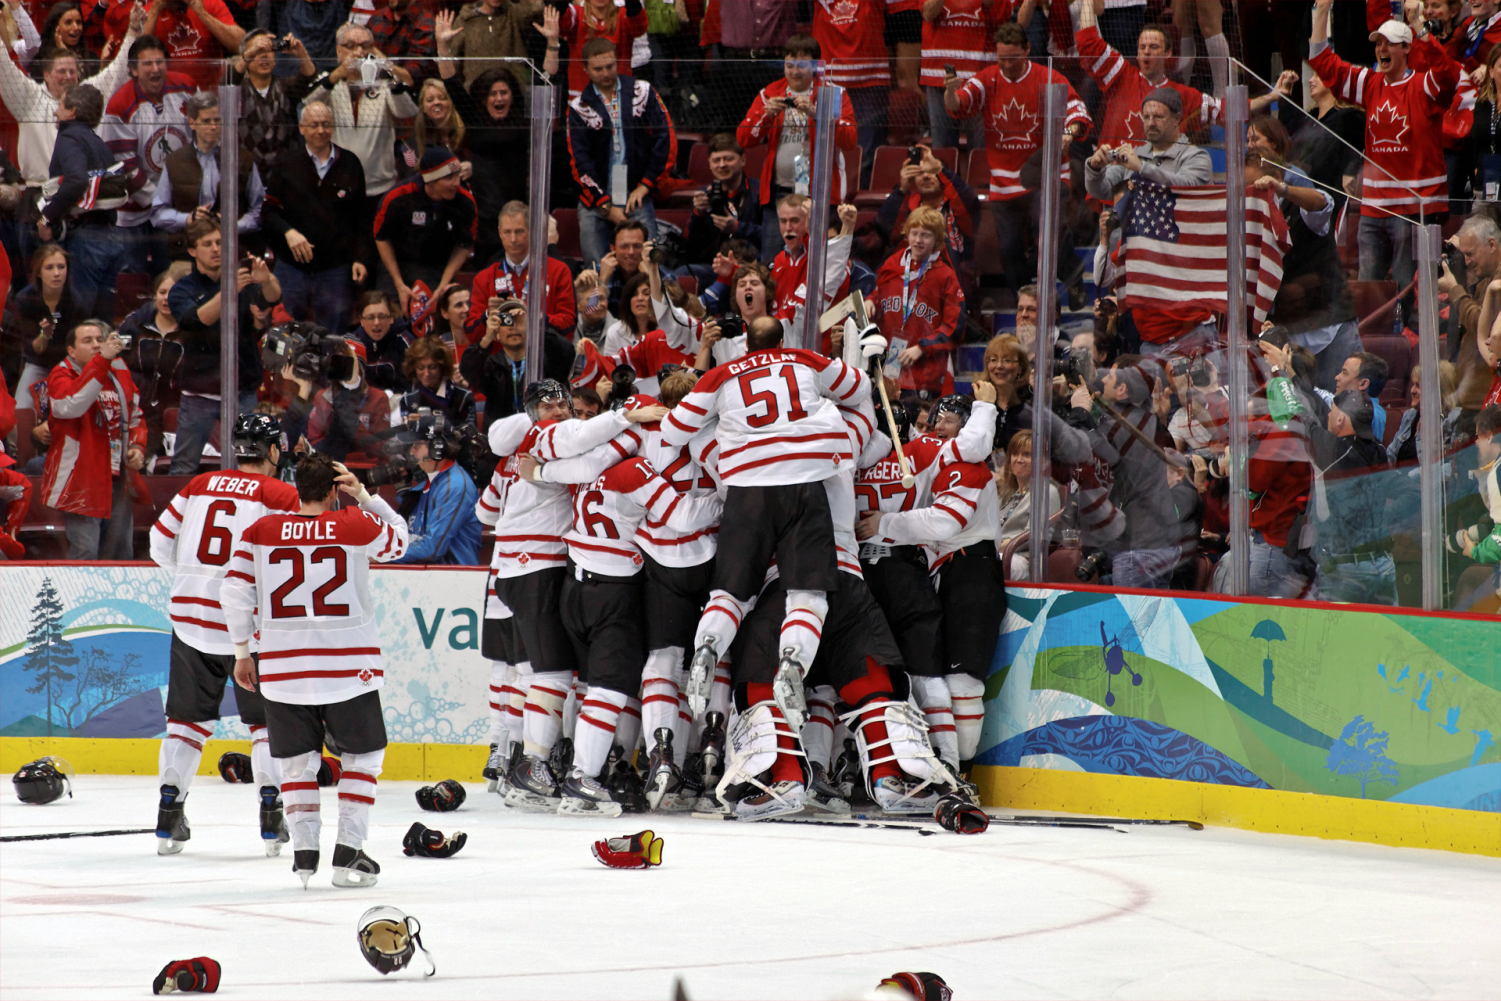 Celebrating after scoring the golden goal in the Vancouver Winter Olympics, Team Canada dog piles on top of captain Sidney Crosby. This year that same result can not be expected, as the team's best players will not be participating.